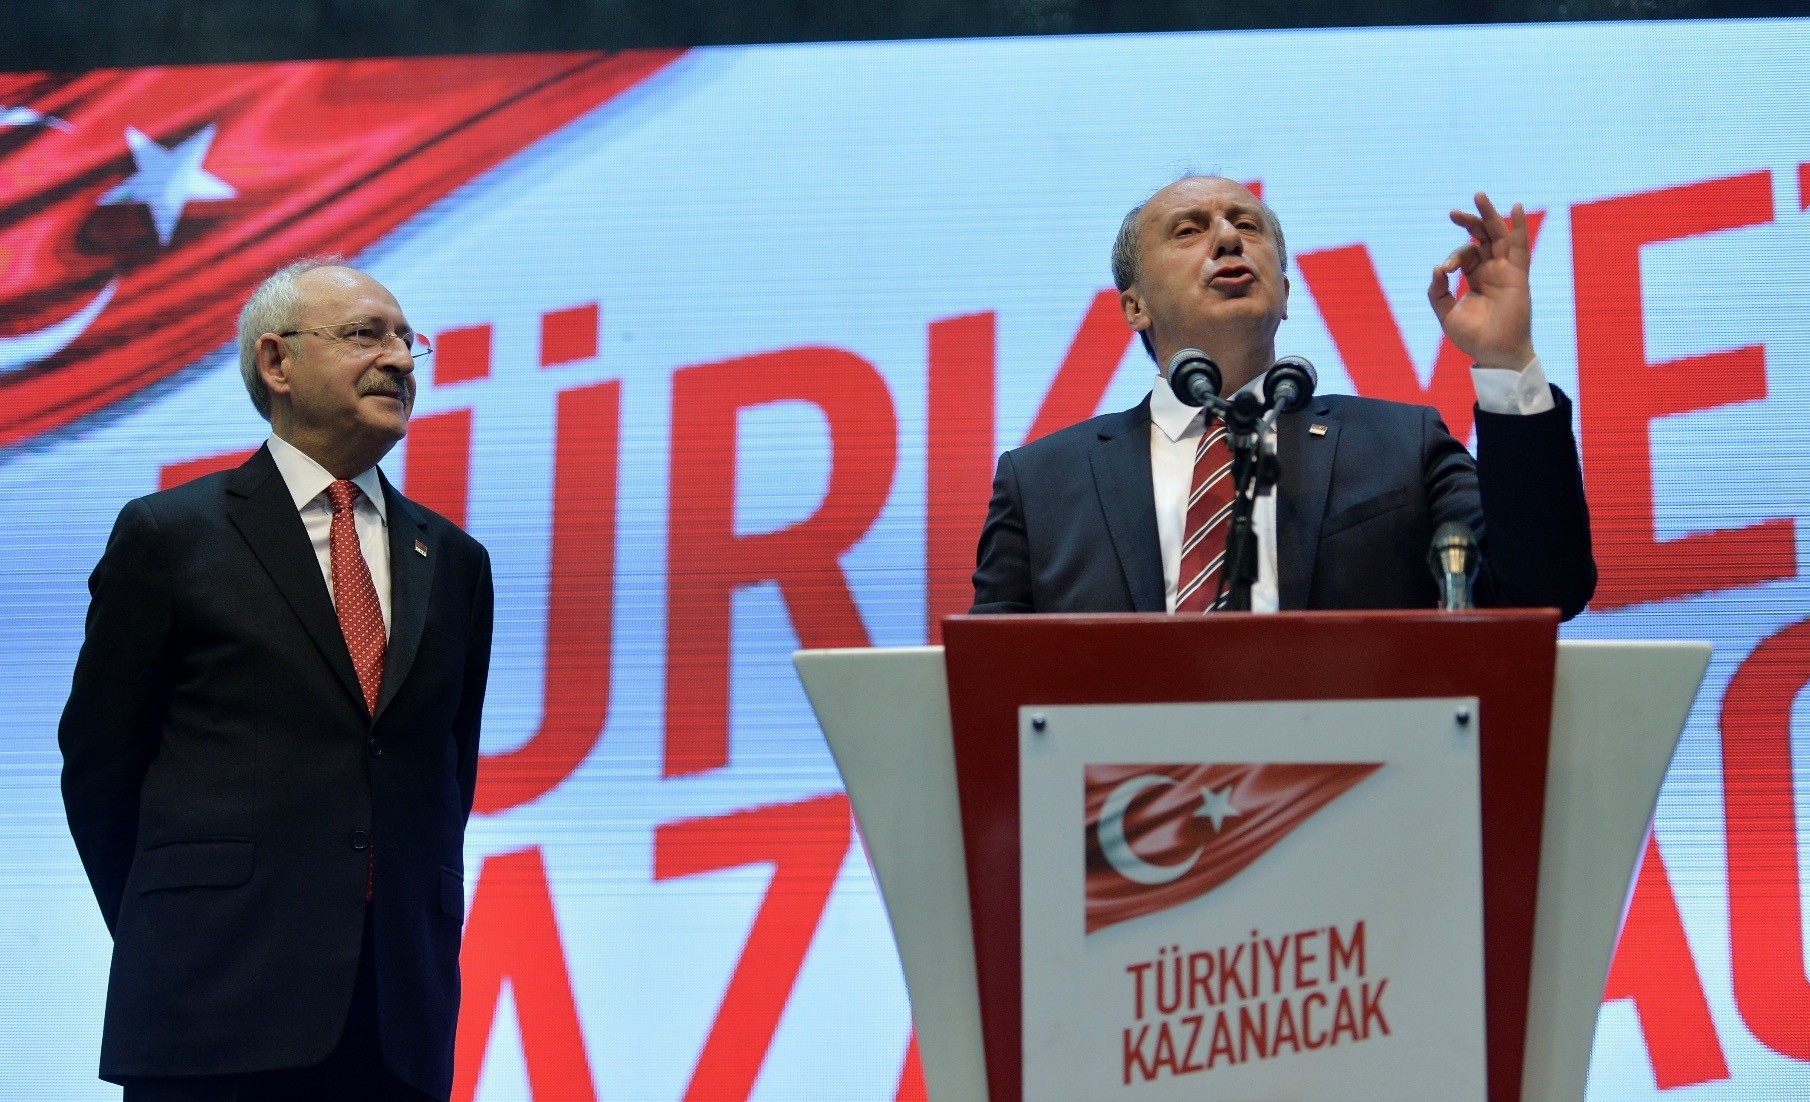 Muharrem u0130nce (R) told reporters at Parliament yesterday that he offered Kemal Ku0131lu0131u00e7darou011flu (L) an honorary party chairmanship position.